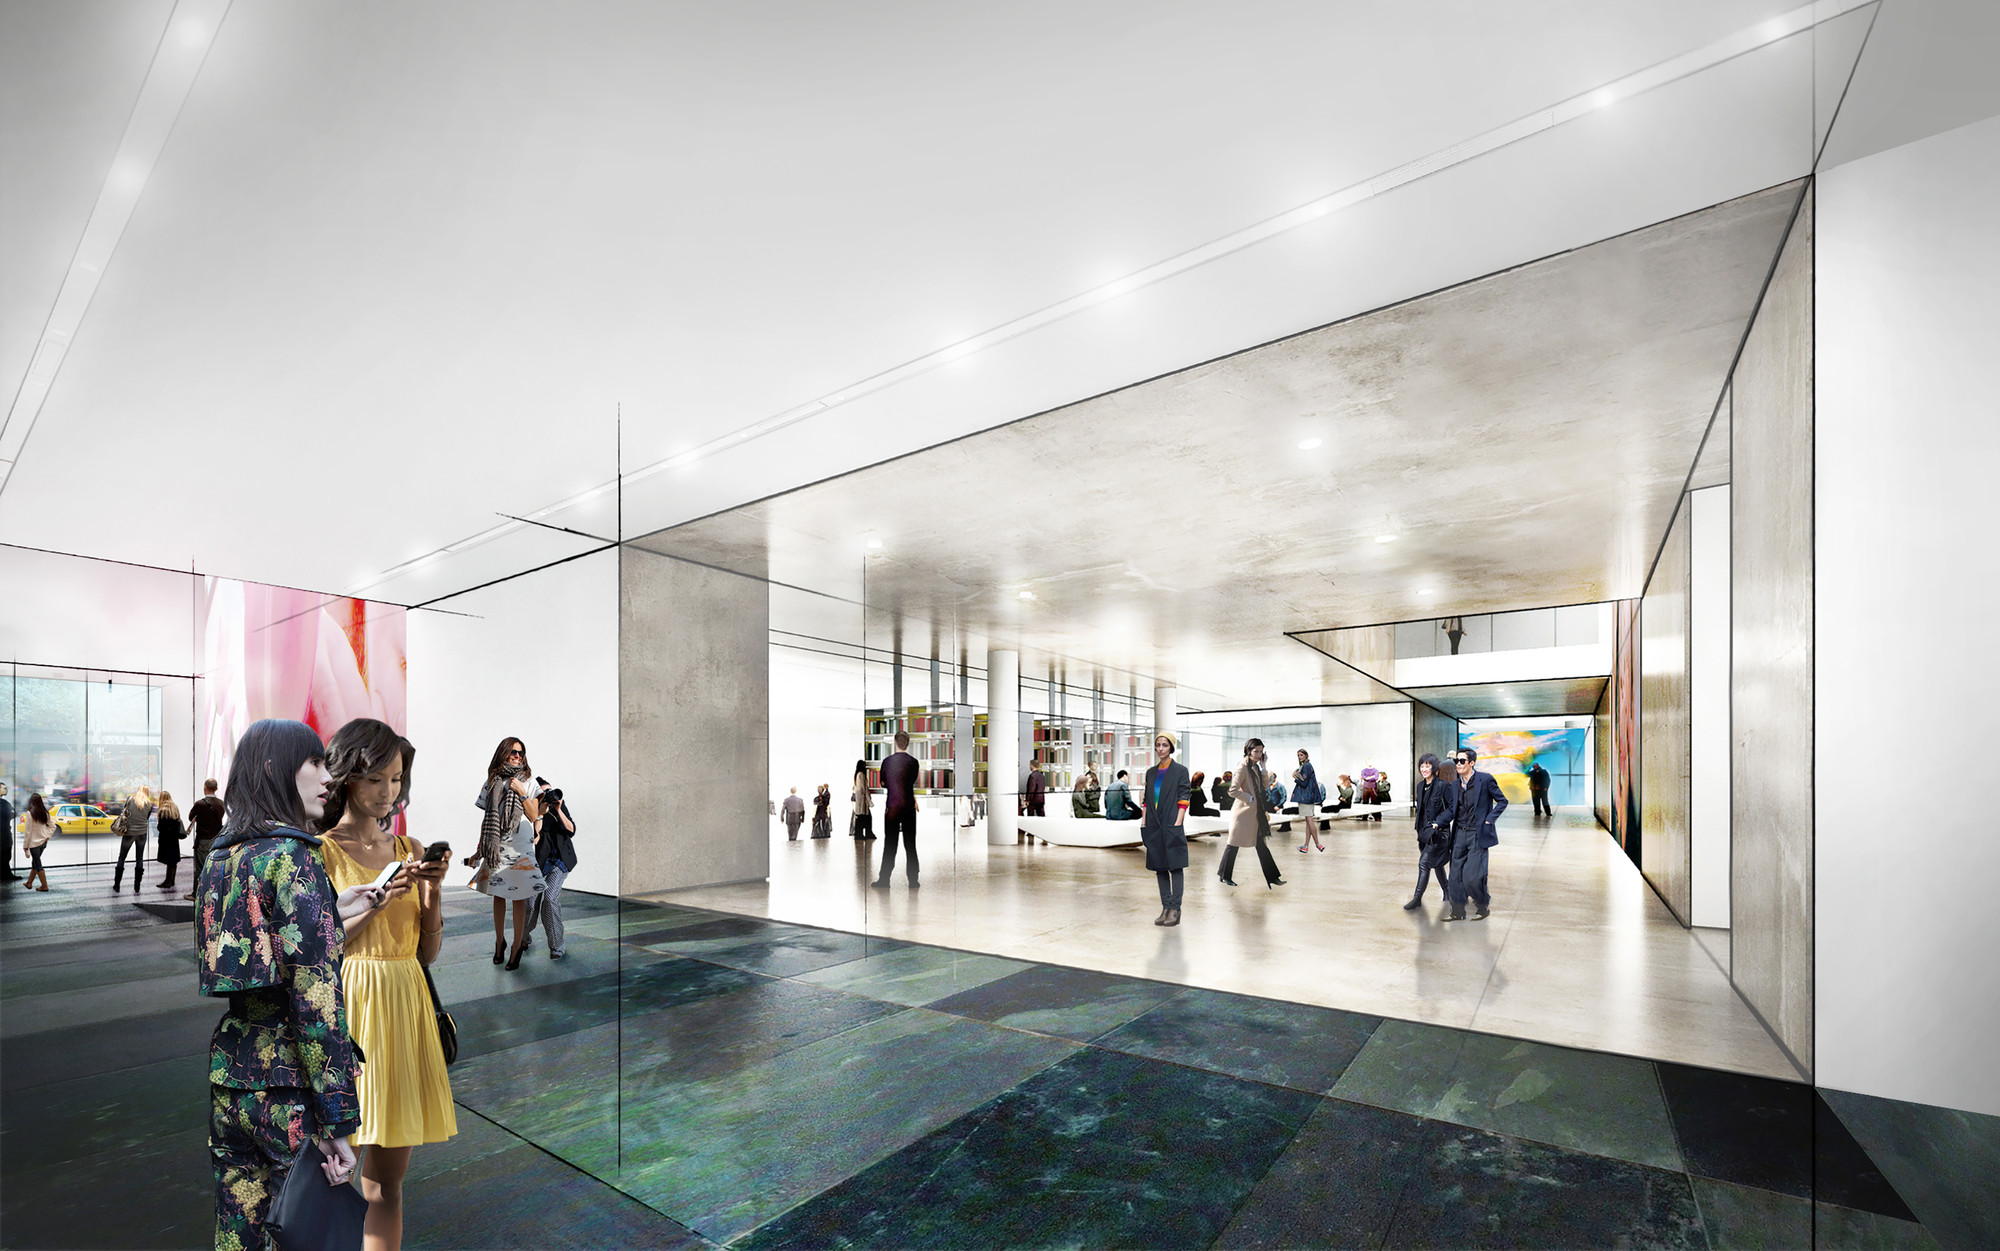 Rendering of the west lobby of the new MoMA, by Diller Scofidio + Renfro. Image Courtesy of MoMA